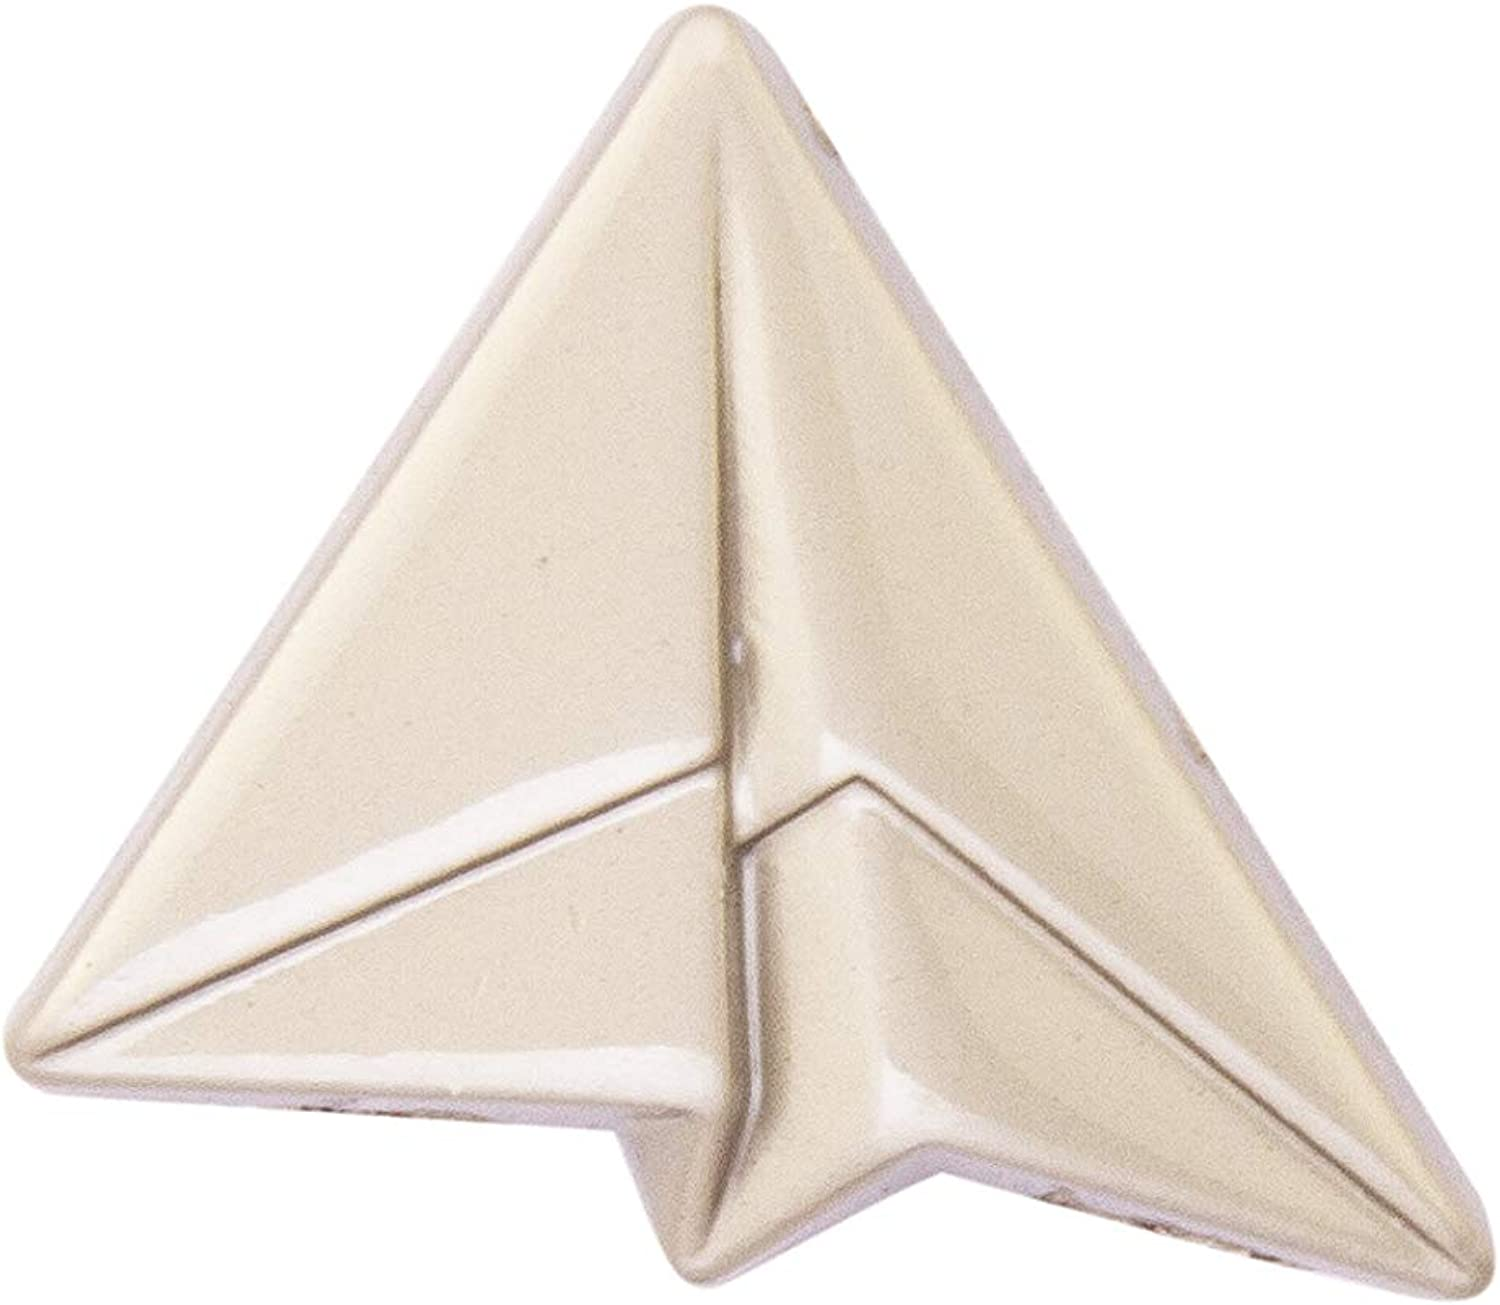 Knighthood Silver Paper Aeroplane Lapel Pin/Brooch for Men